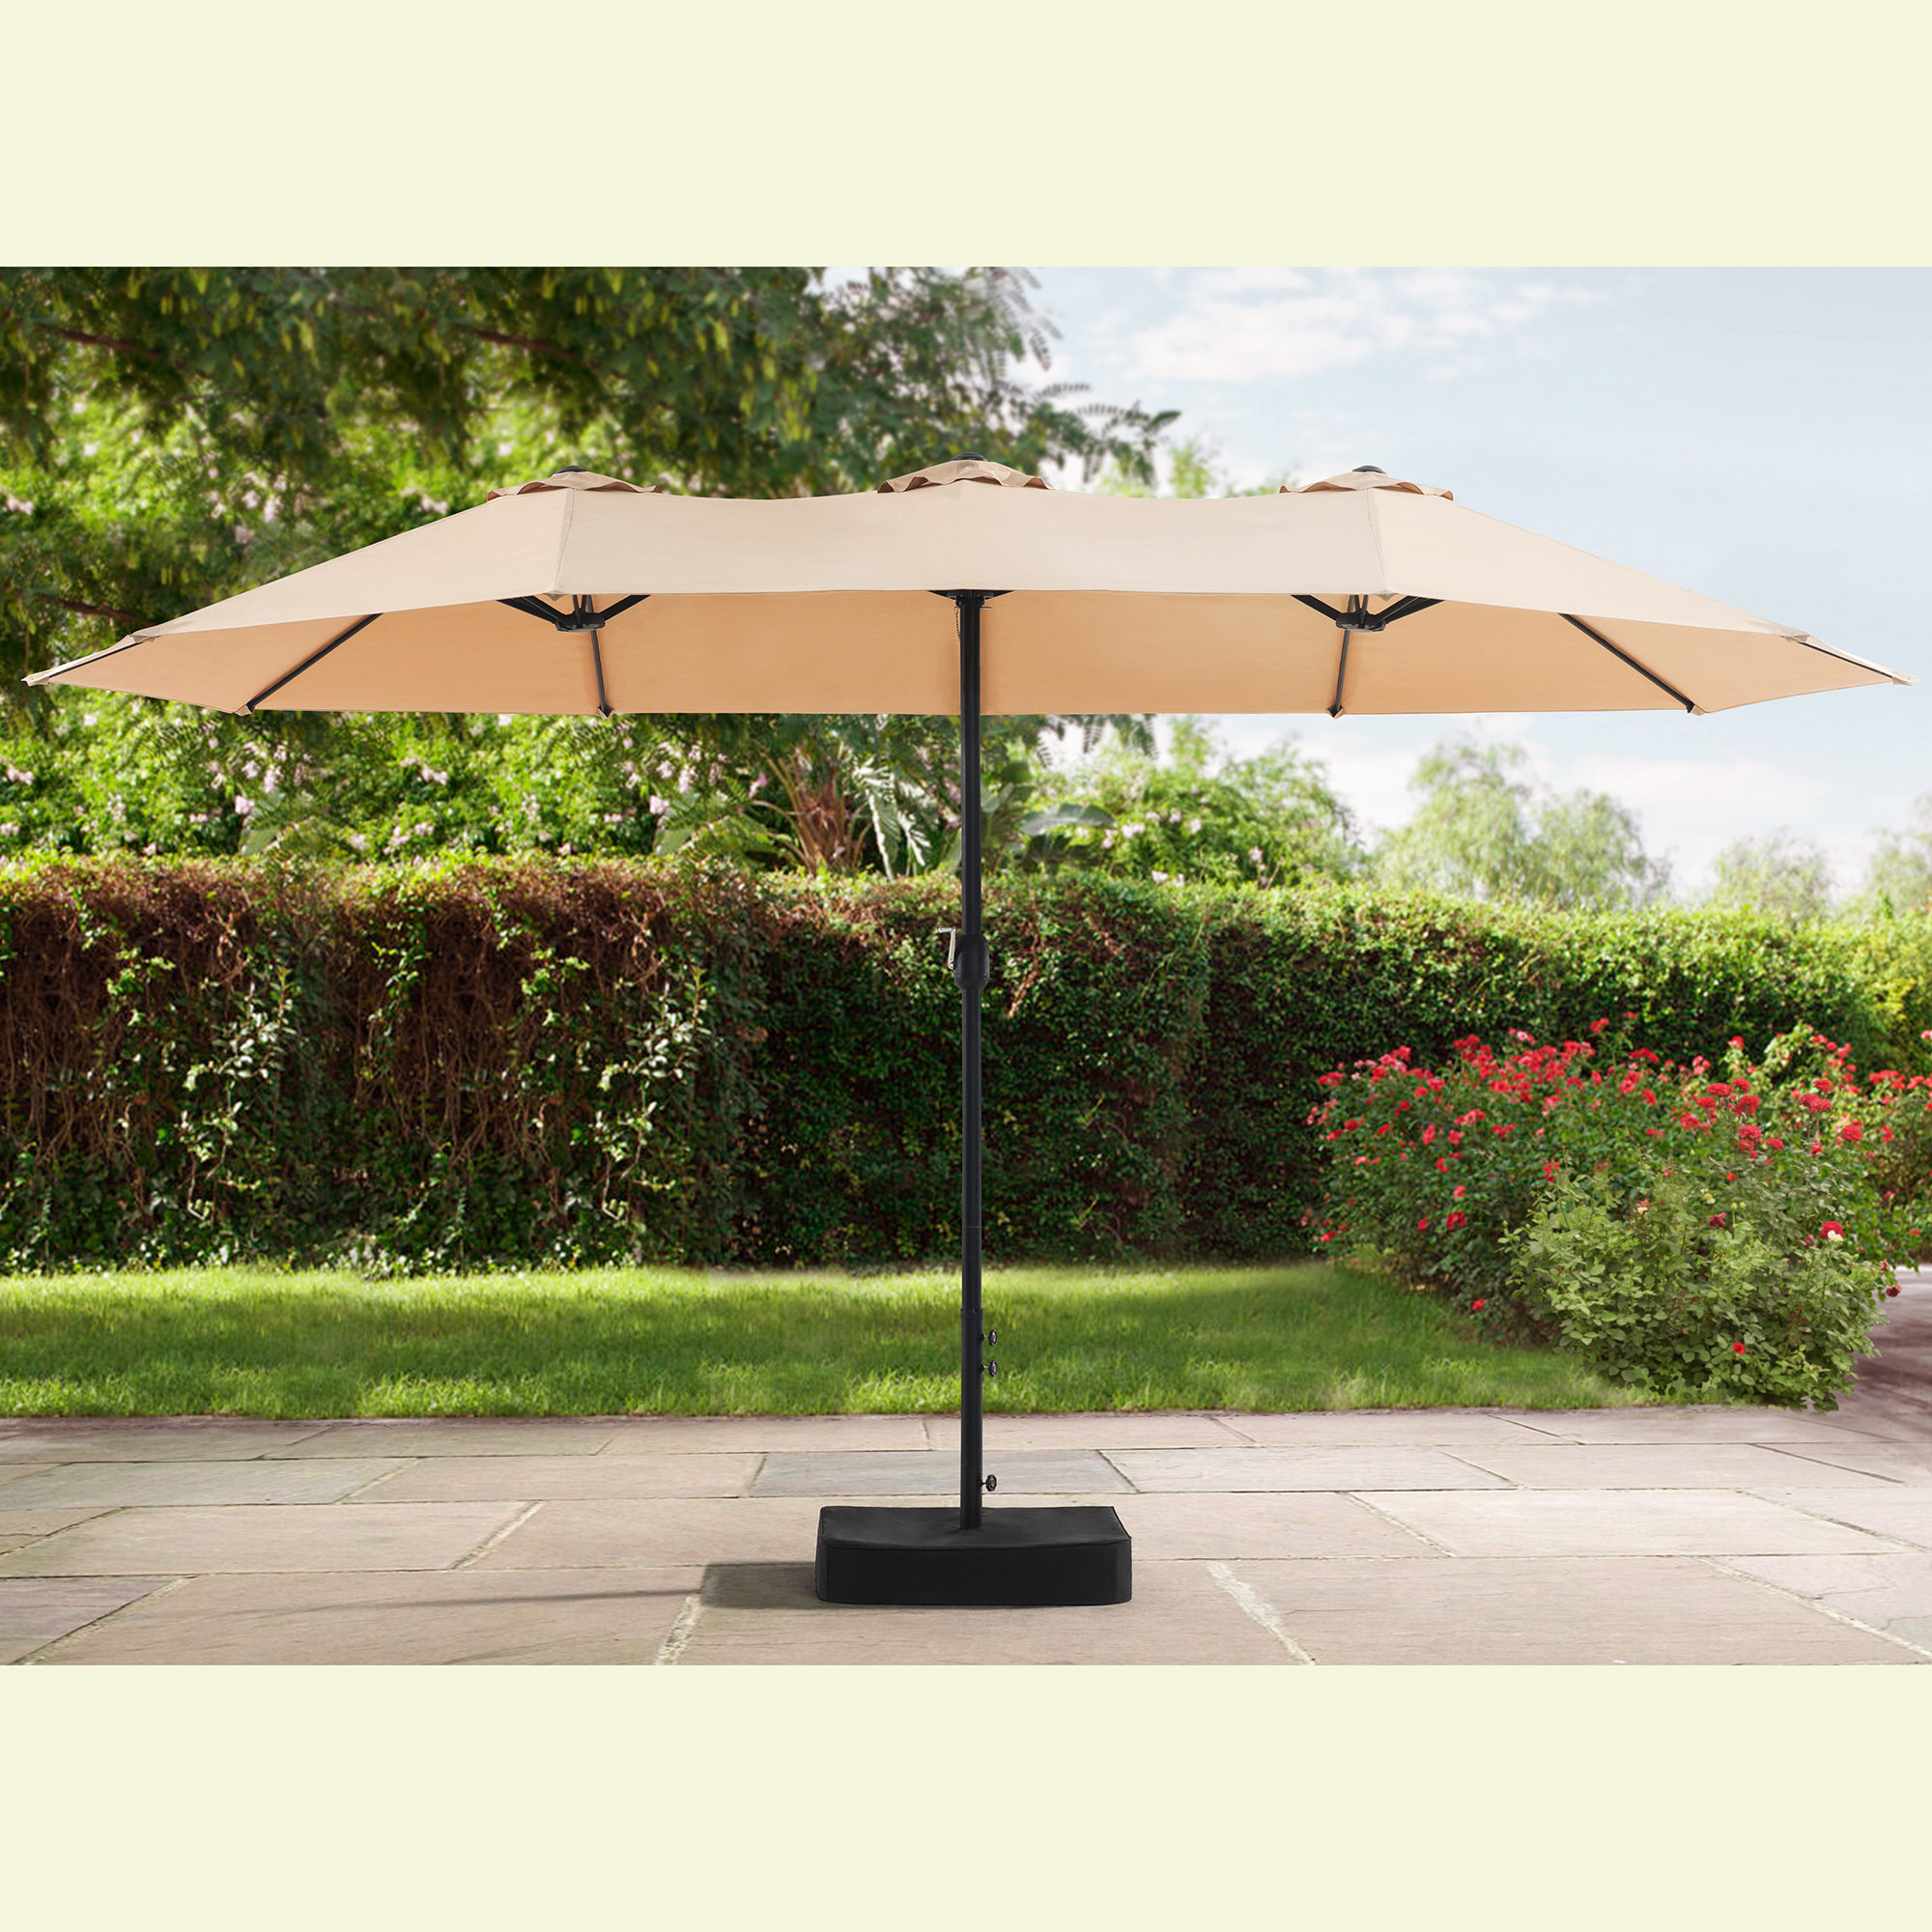 Darby Home Co Clarita 7' X 15' Rectangular Market Umbrella Throughout Latest Madalyn Rectangular Market Sunbrella Umbrellas (View 4 of 20)